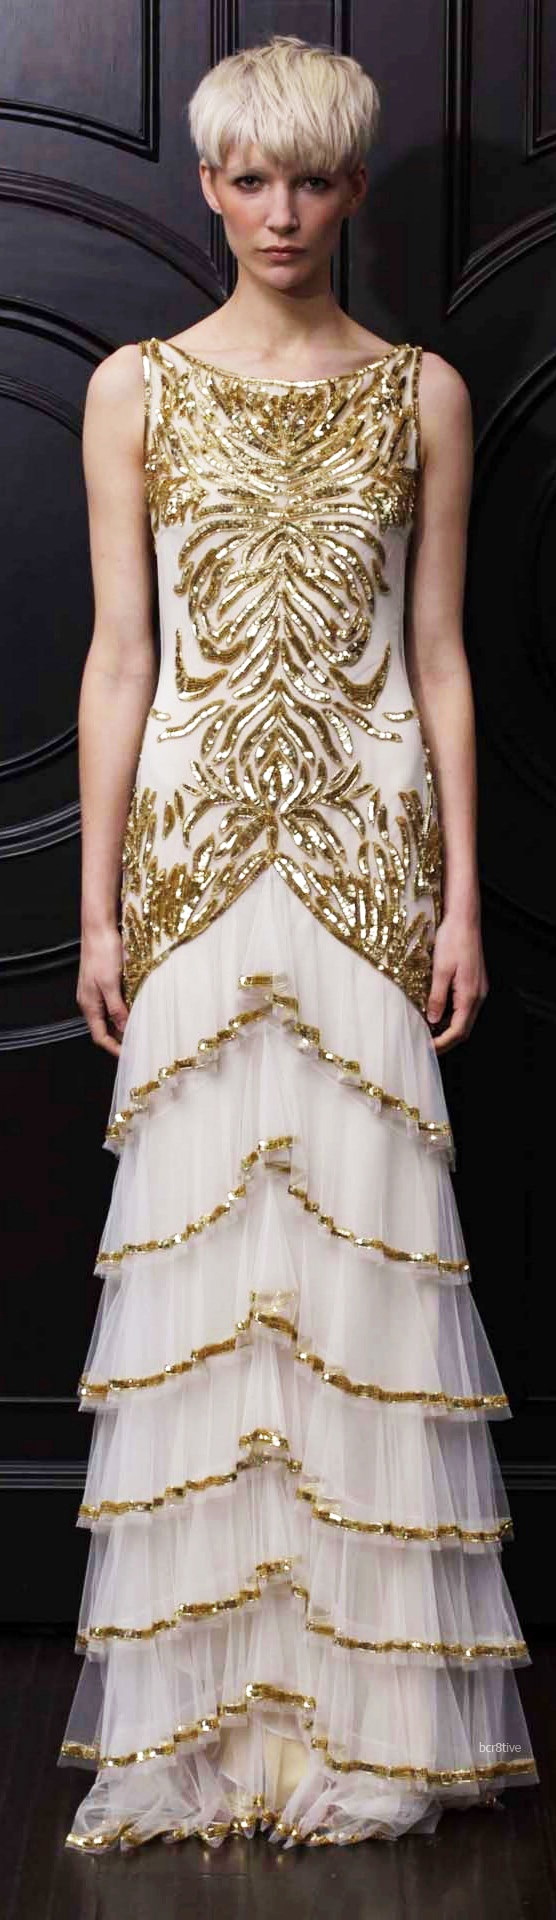 best fashiongold images on pinterest lace baroque and